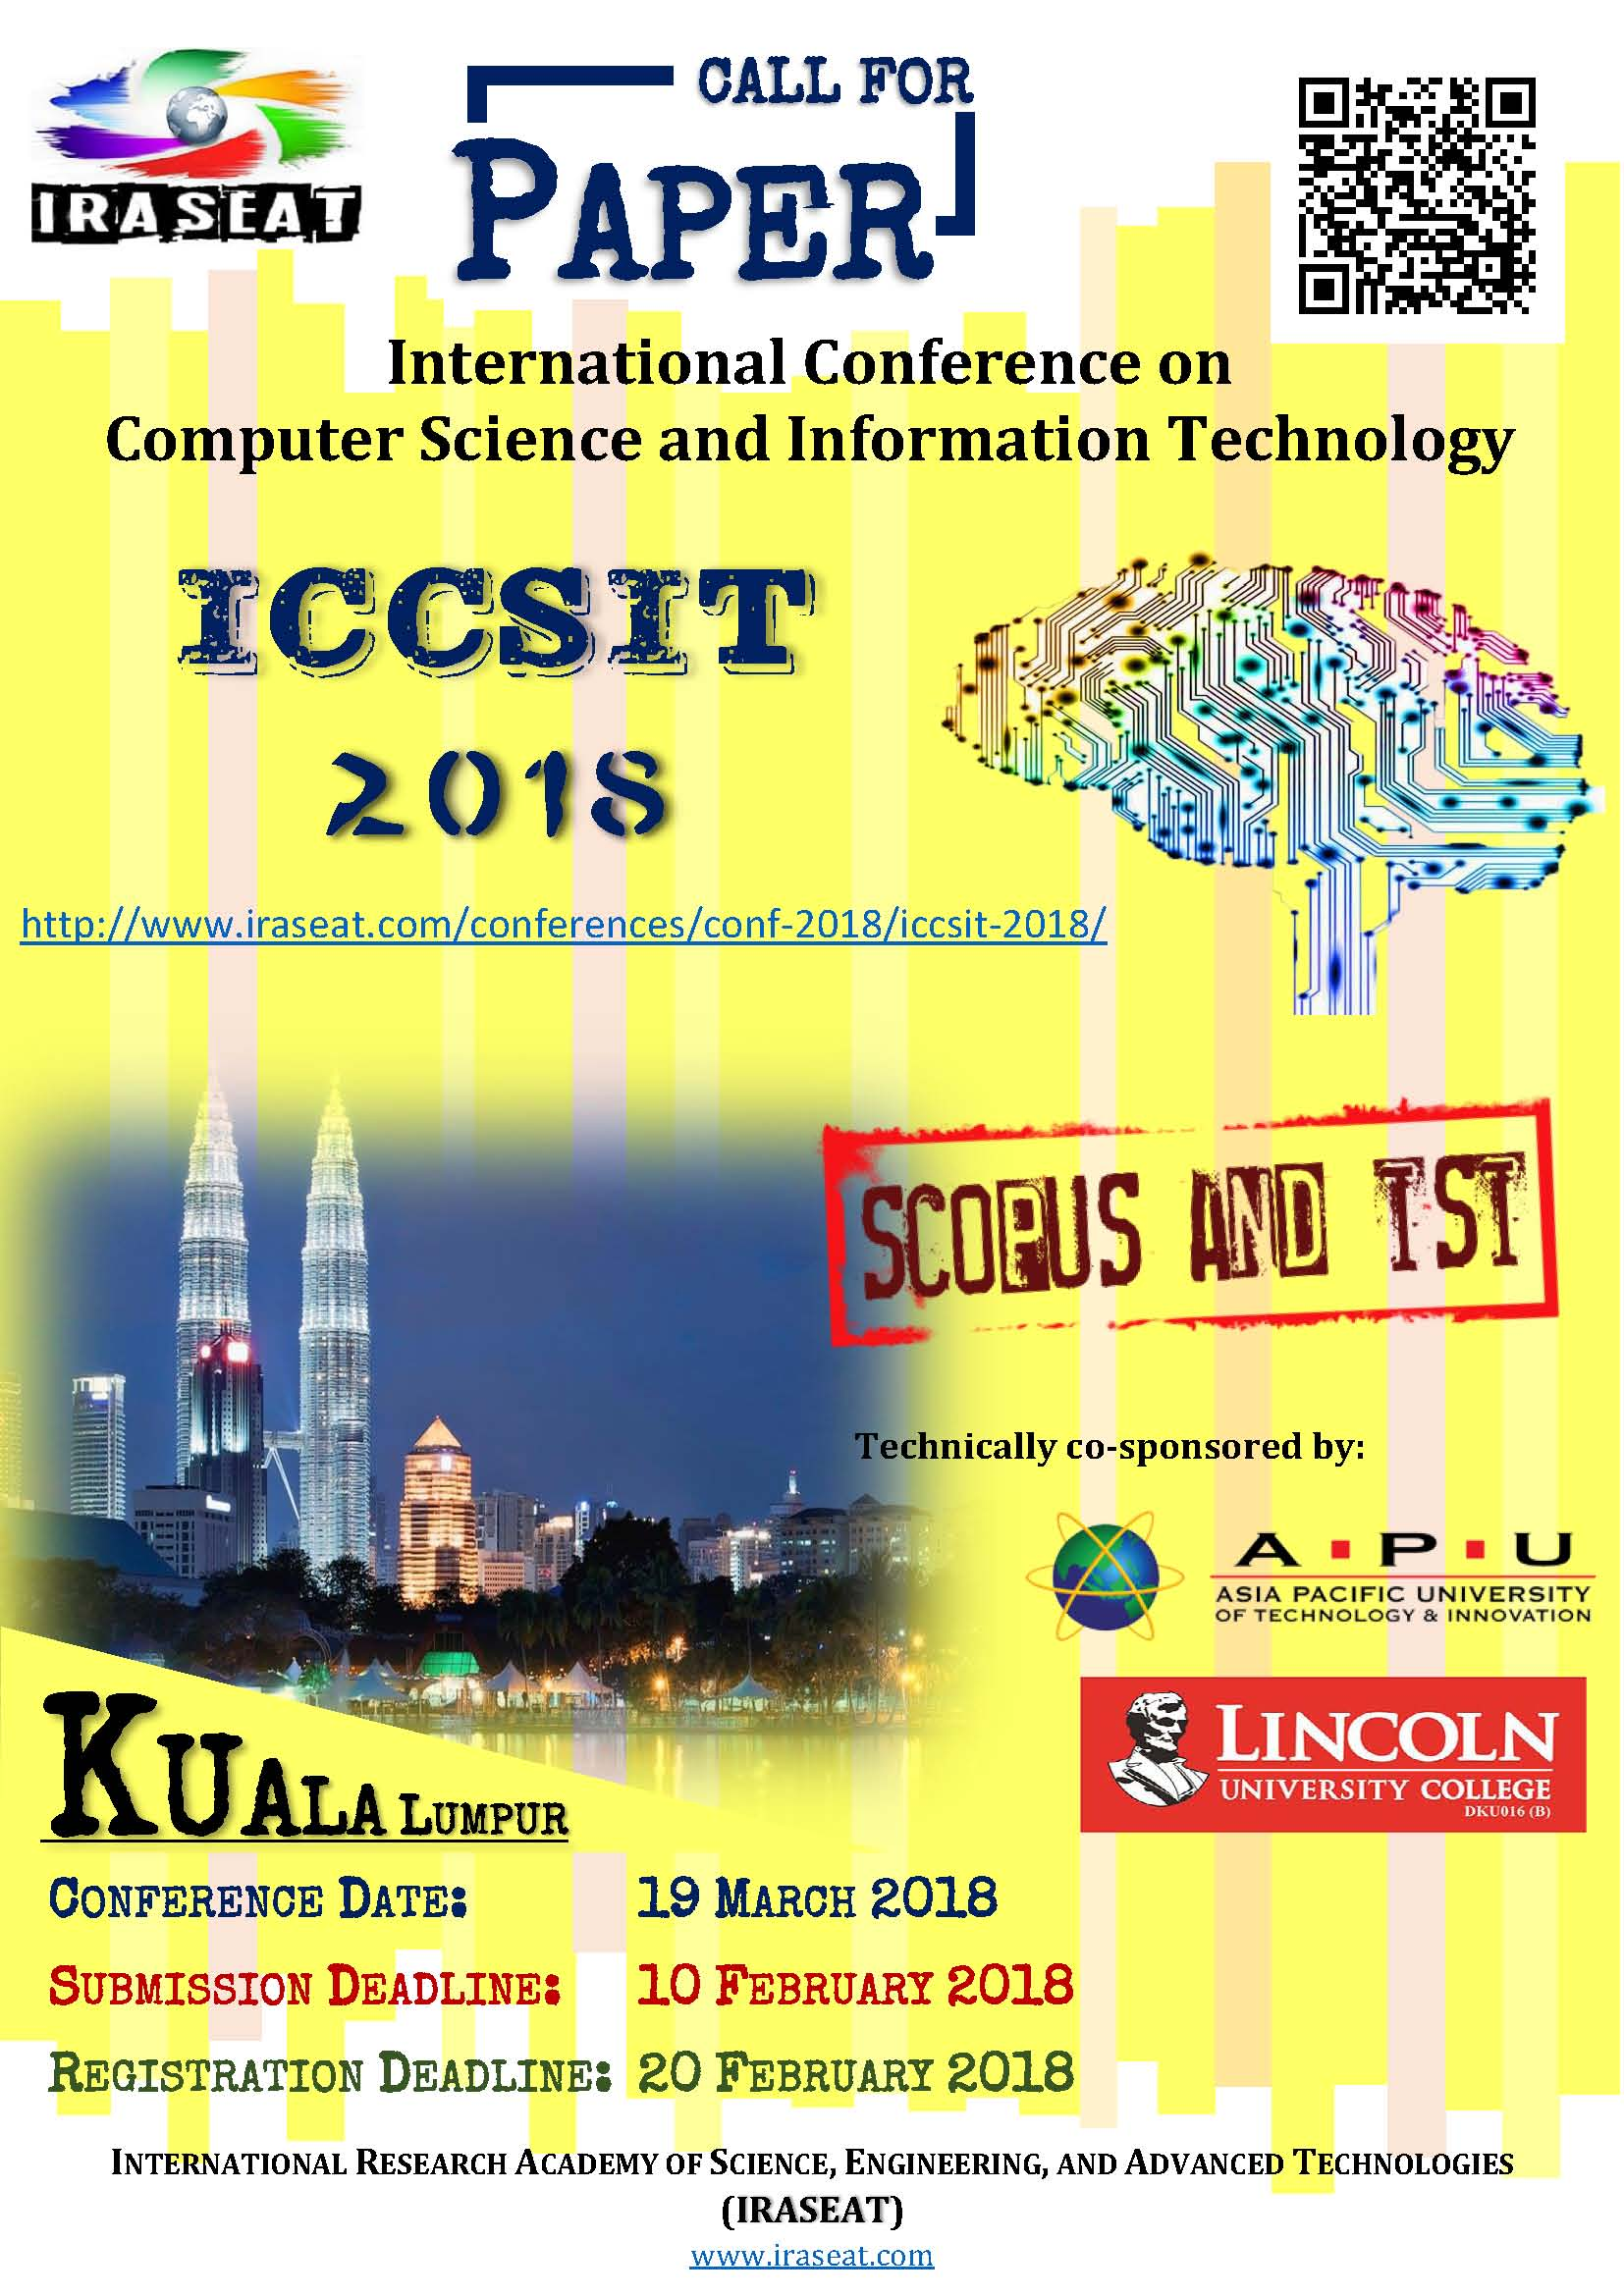 018 Latest Researchs In Computer Science Cfp Iccsit Dreaded Research Papers 2018 Paper Full